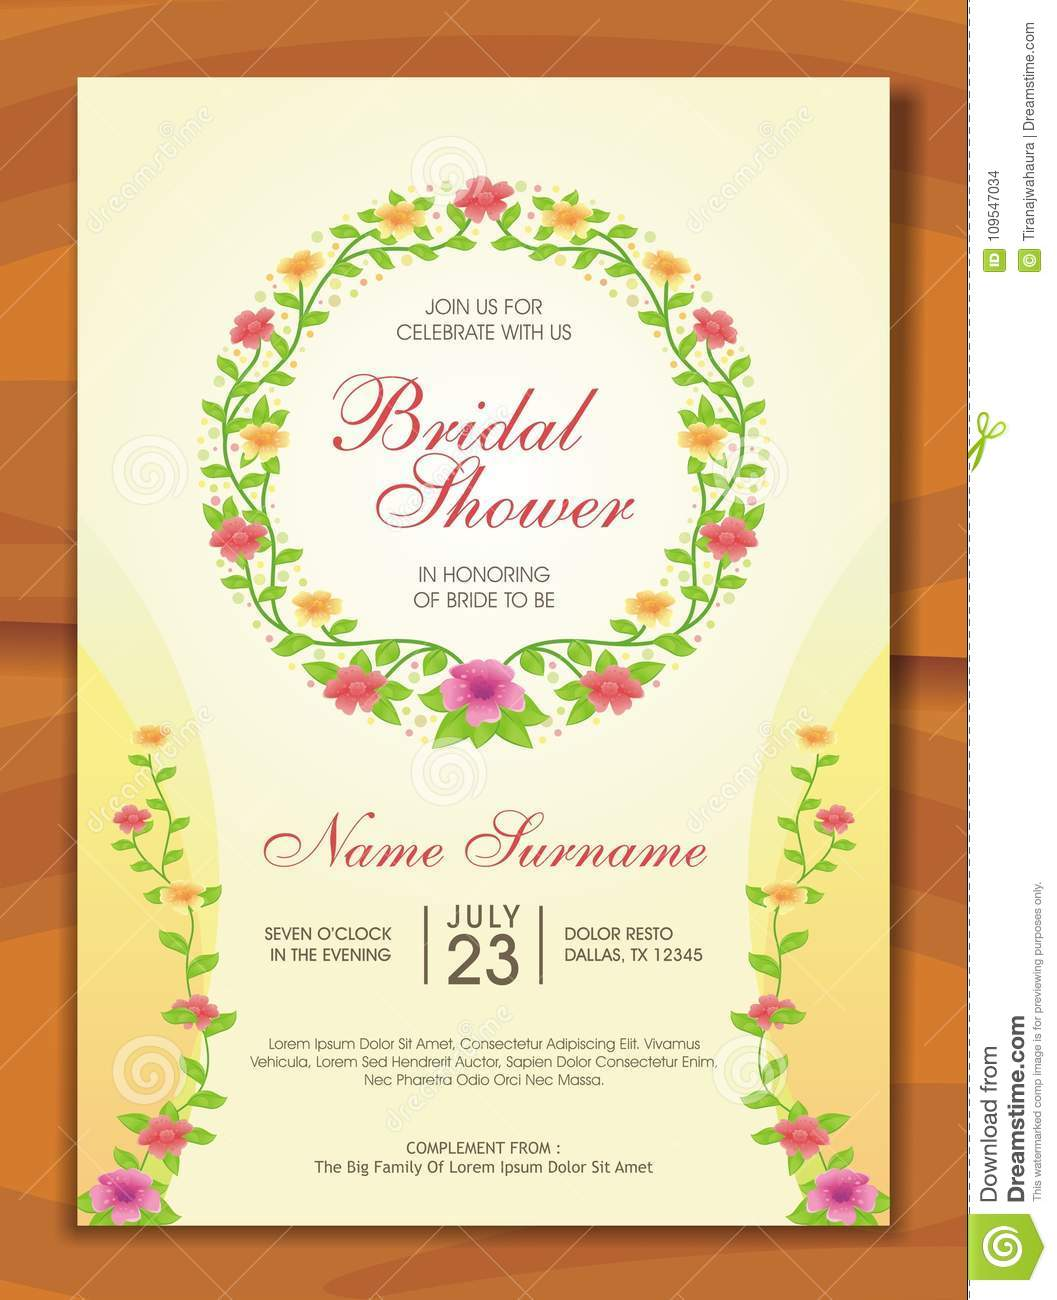 bridal shower invitation with lovely design